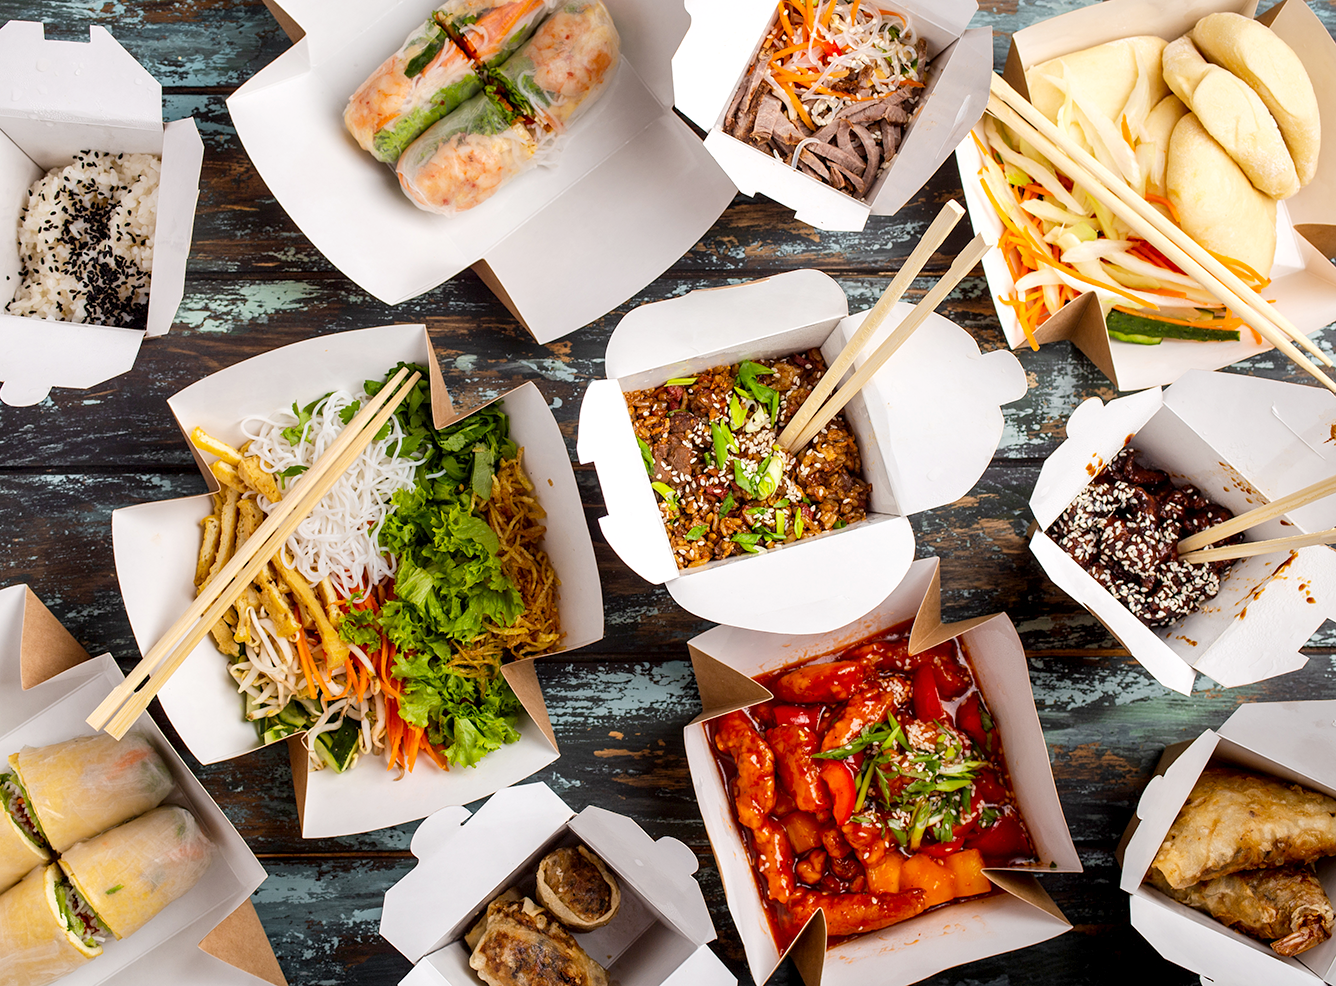 27 Restaurants Open For Takeout On Easter 2020 Easter Sunday Carryout And To Go Meals